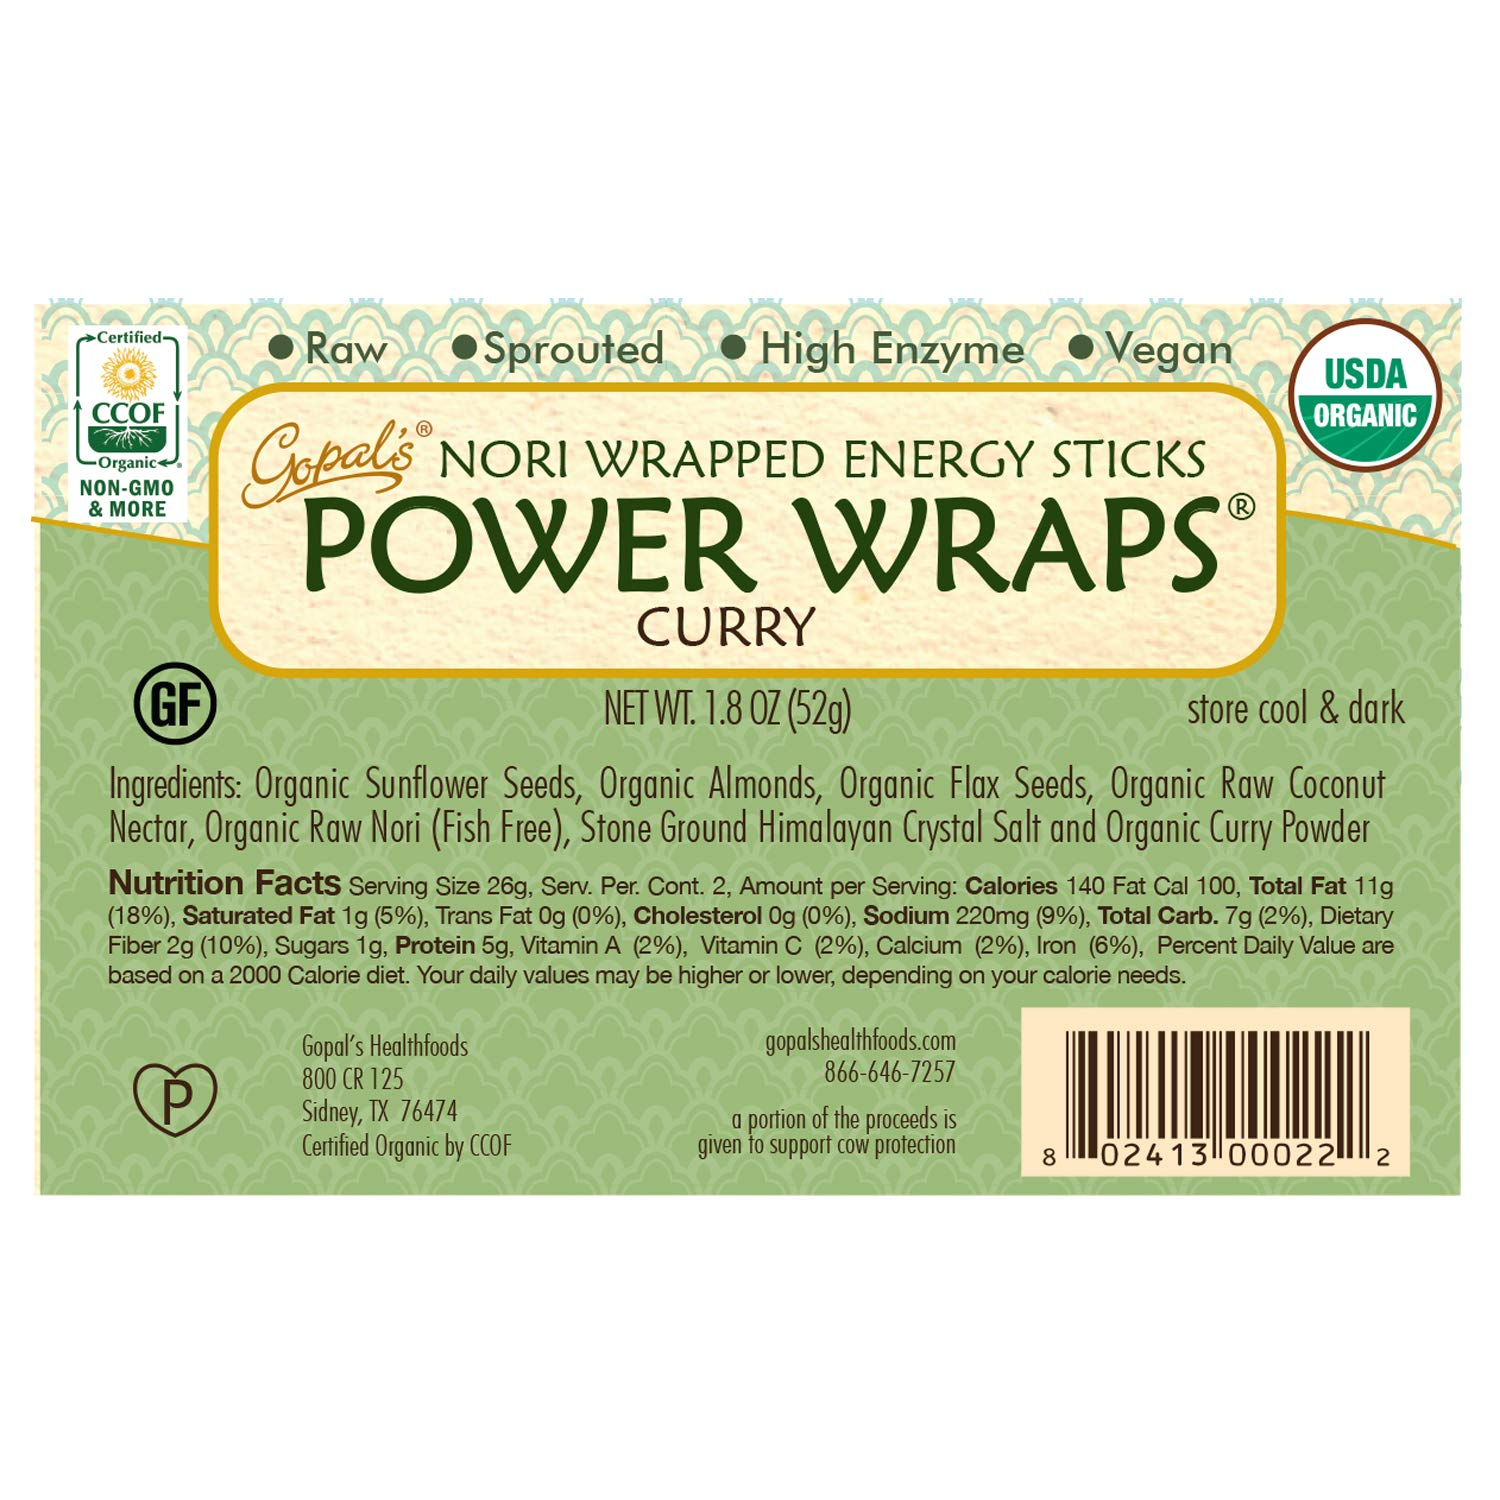 Gopal's Curry Power Wraps, Vegan and Gluten-Free Organic Food, Raw and USDA Certified Nori-Wrapped Energy Sticks 1.8 Ounces (Pack of 24) by Gopal's (Image #3)